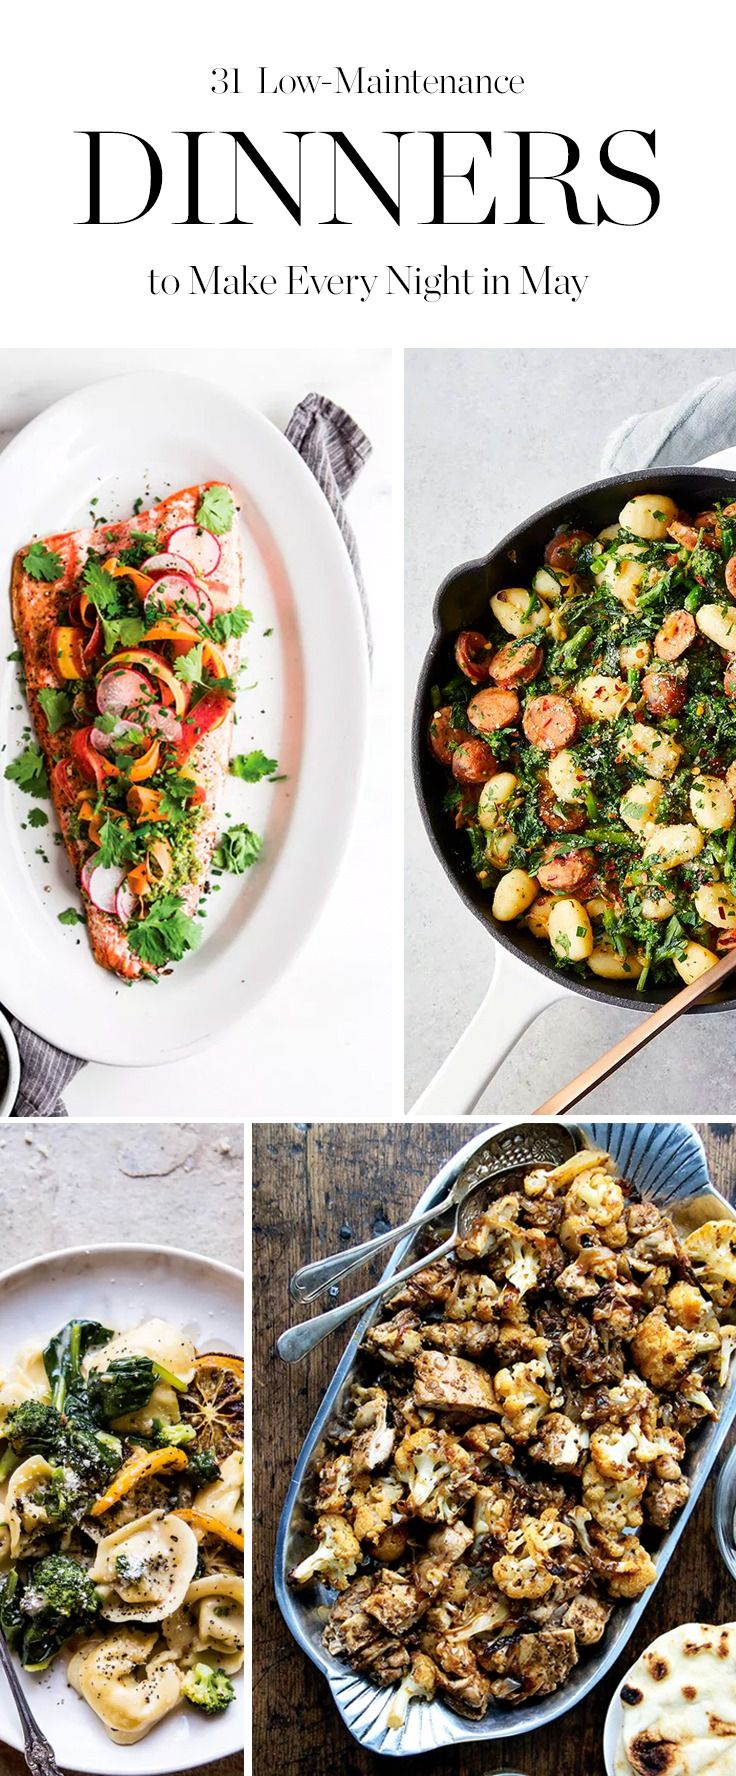 You'll be so busy having fun outside, you definitely won't have time to think up a meal plan. So we've done the work for you. Here are 31 seasonal dinners to try.